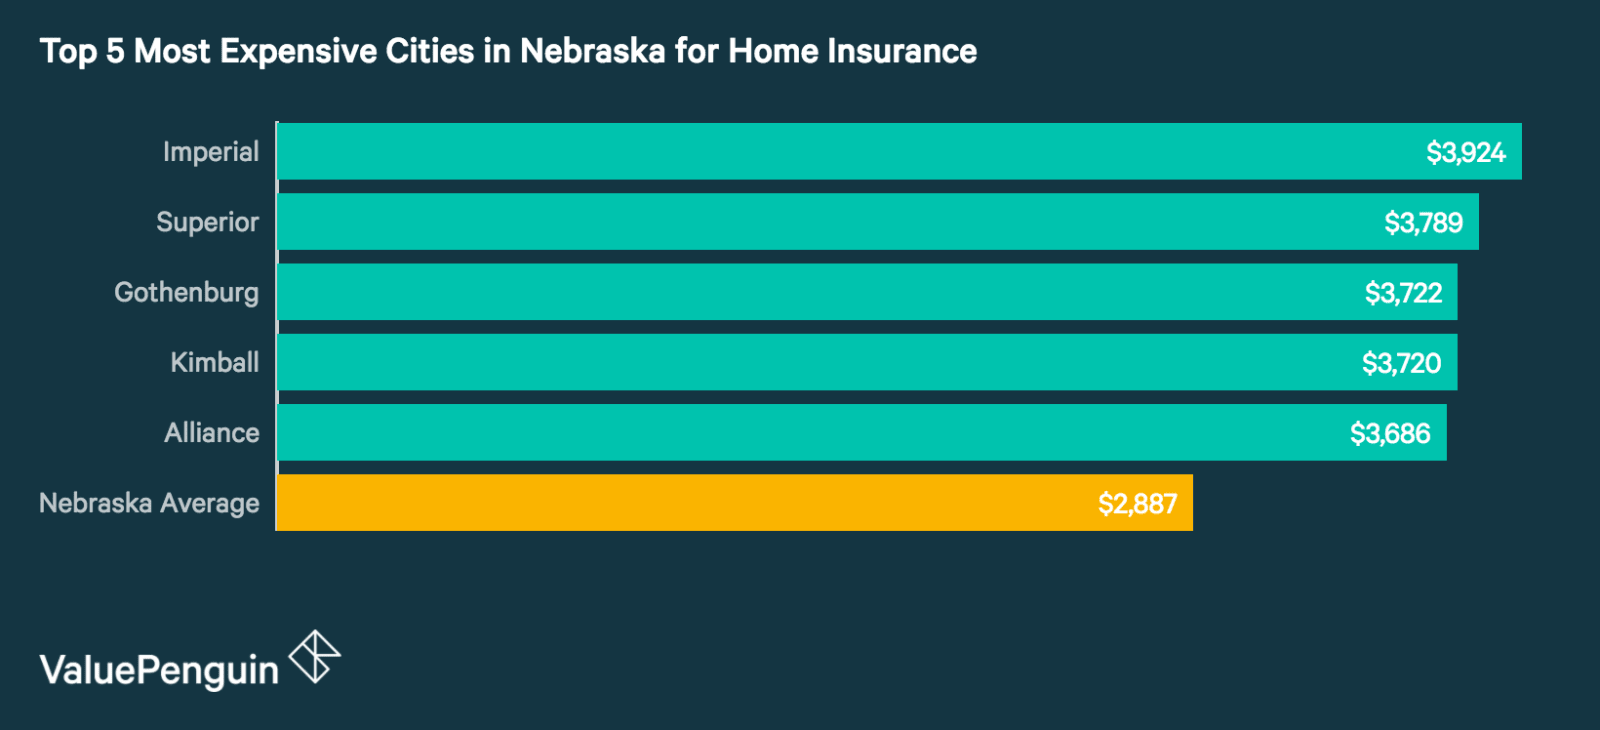 Top 5 Most Expensive Cities in Nebraska for Homeowners Insurance